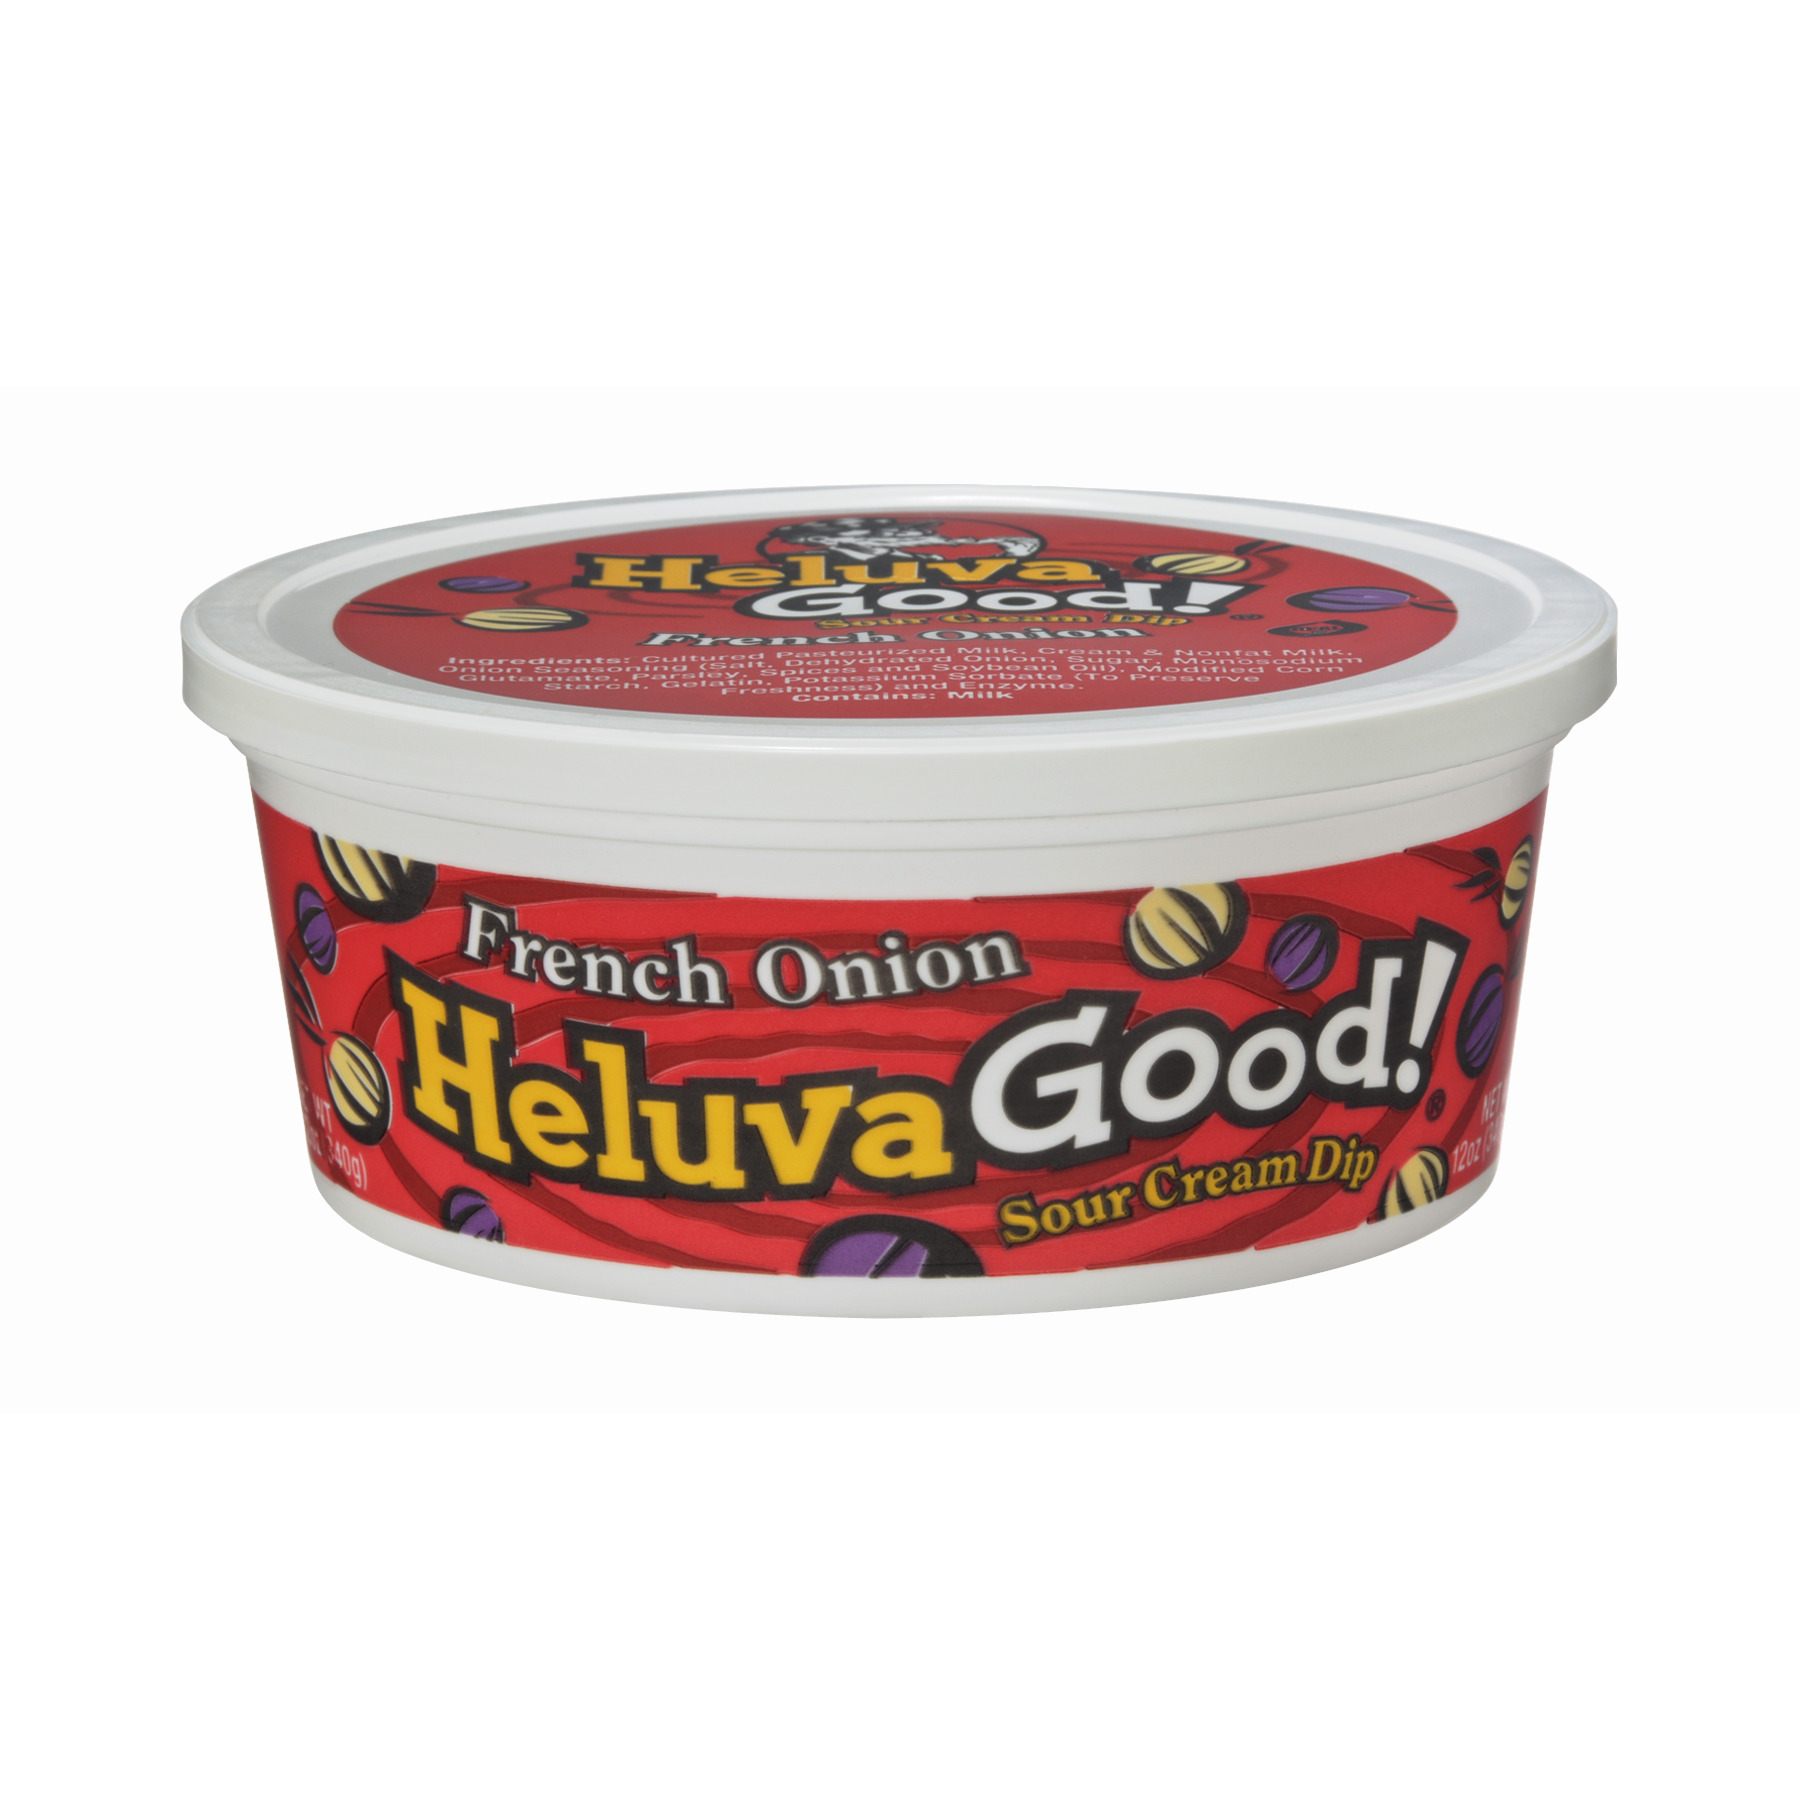 Heluva Good! French Onion Sour Cream Dip, 12.0 OZ